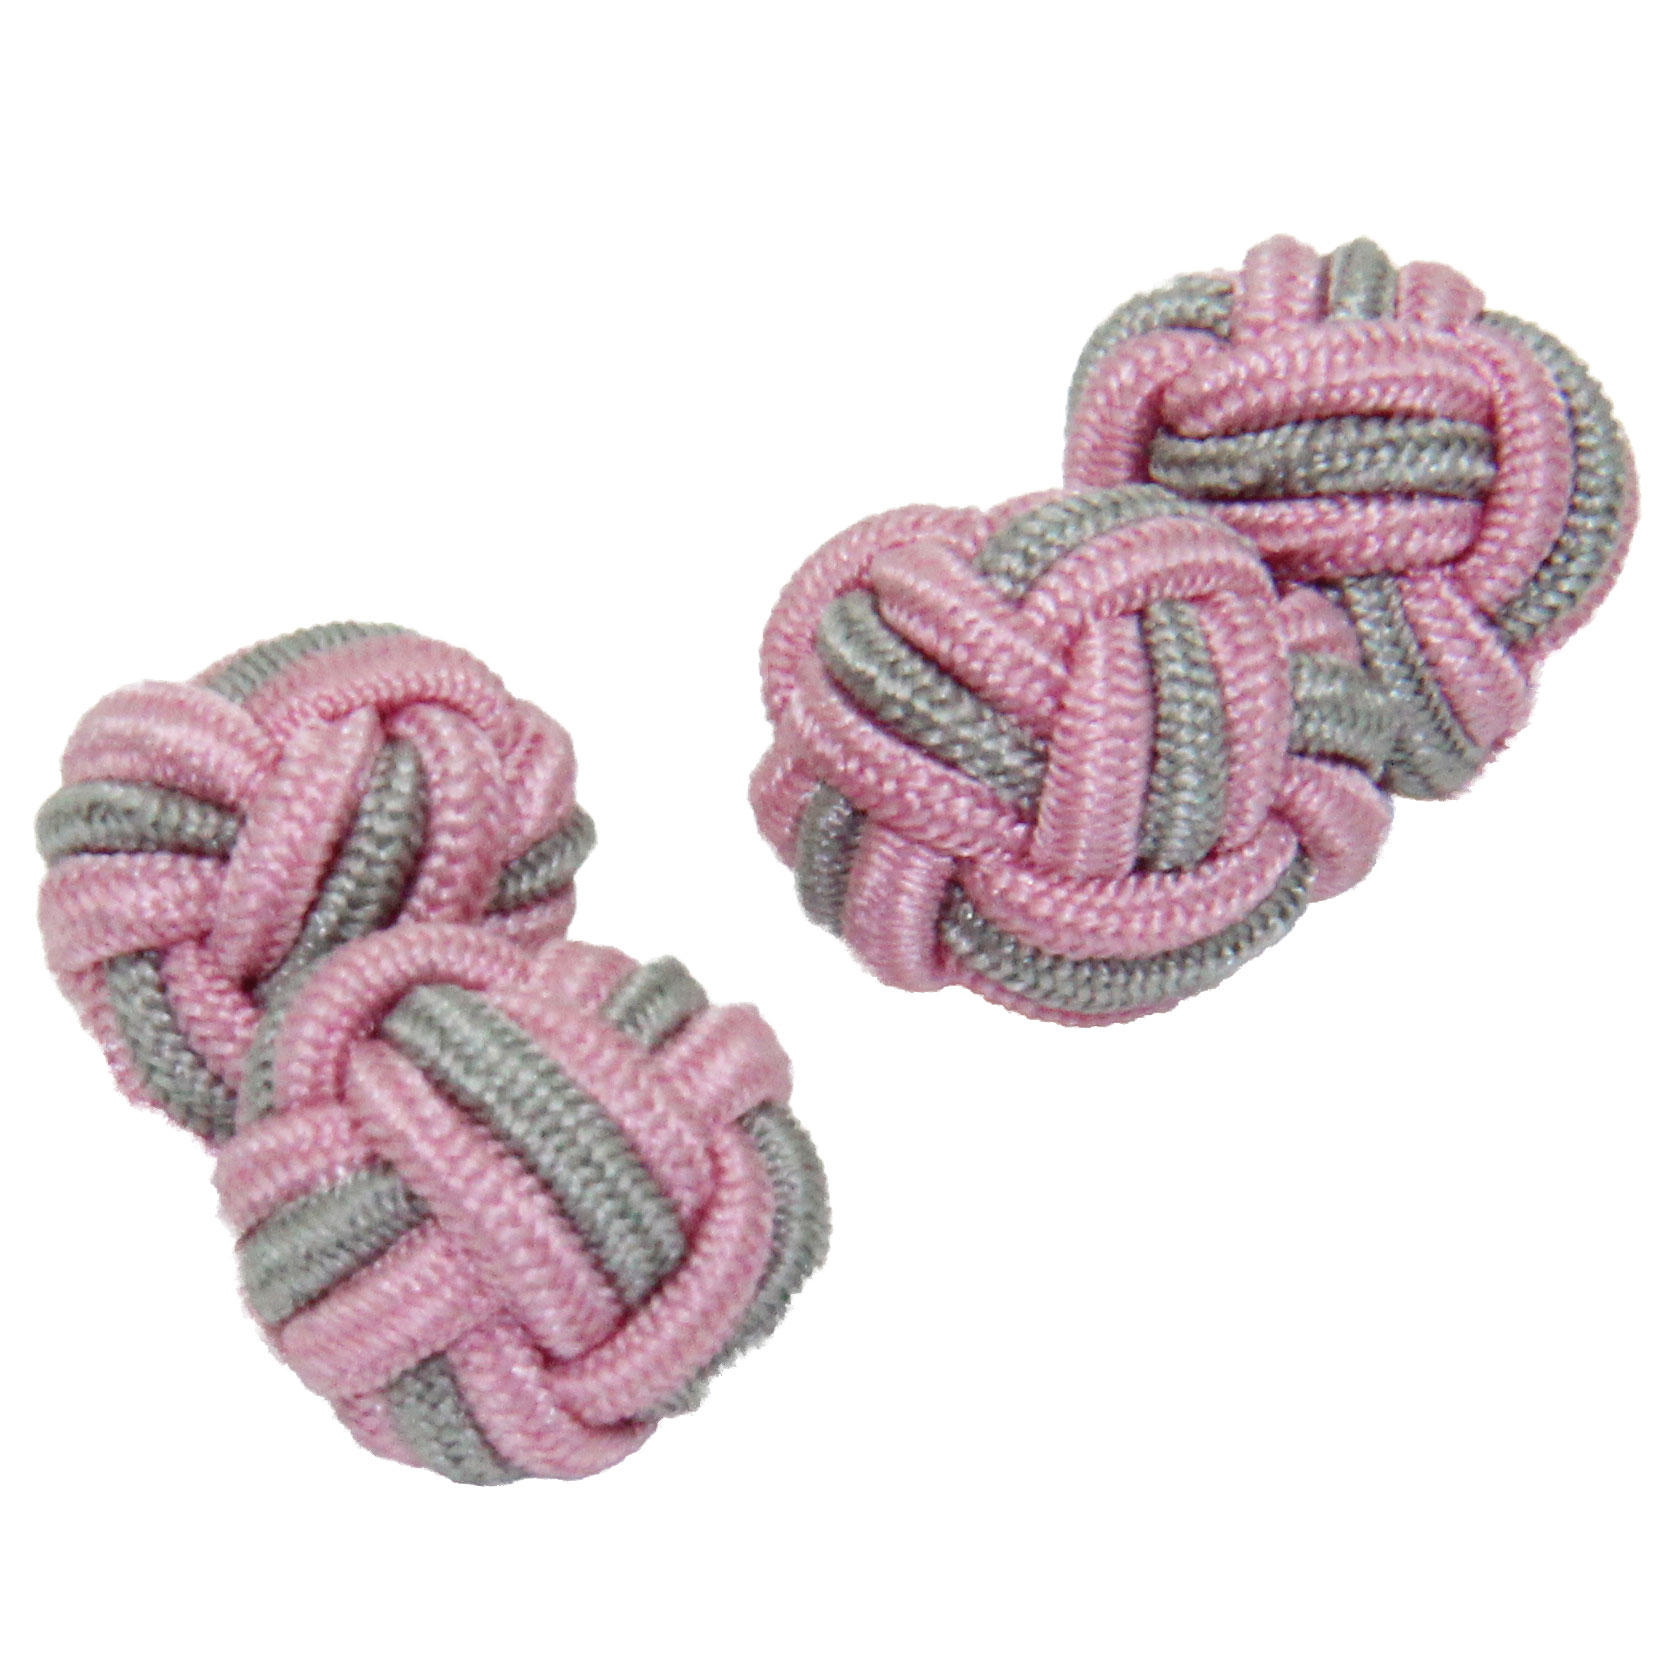 Pale Pink and Grey Silk Knot Cufflinks from Cuffs & Co